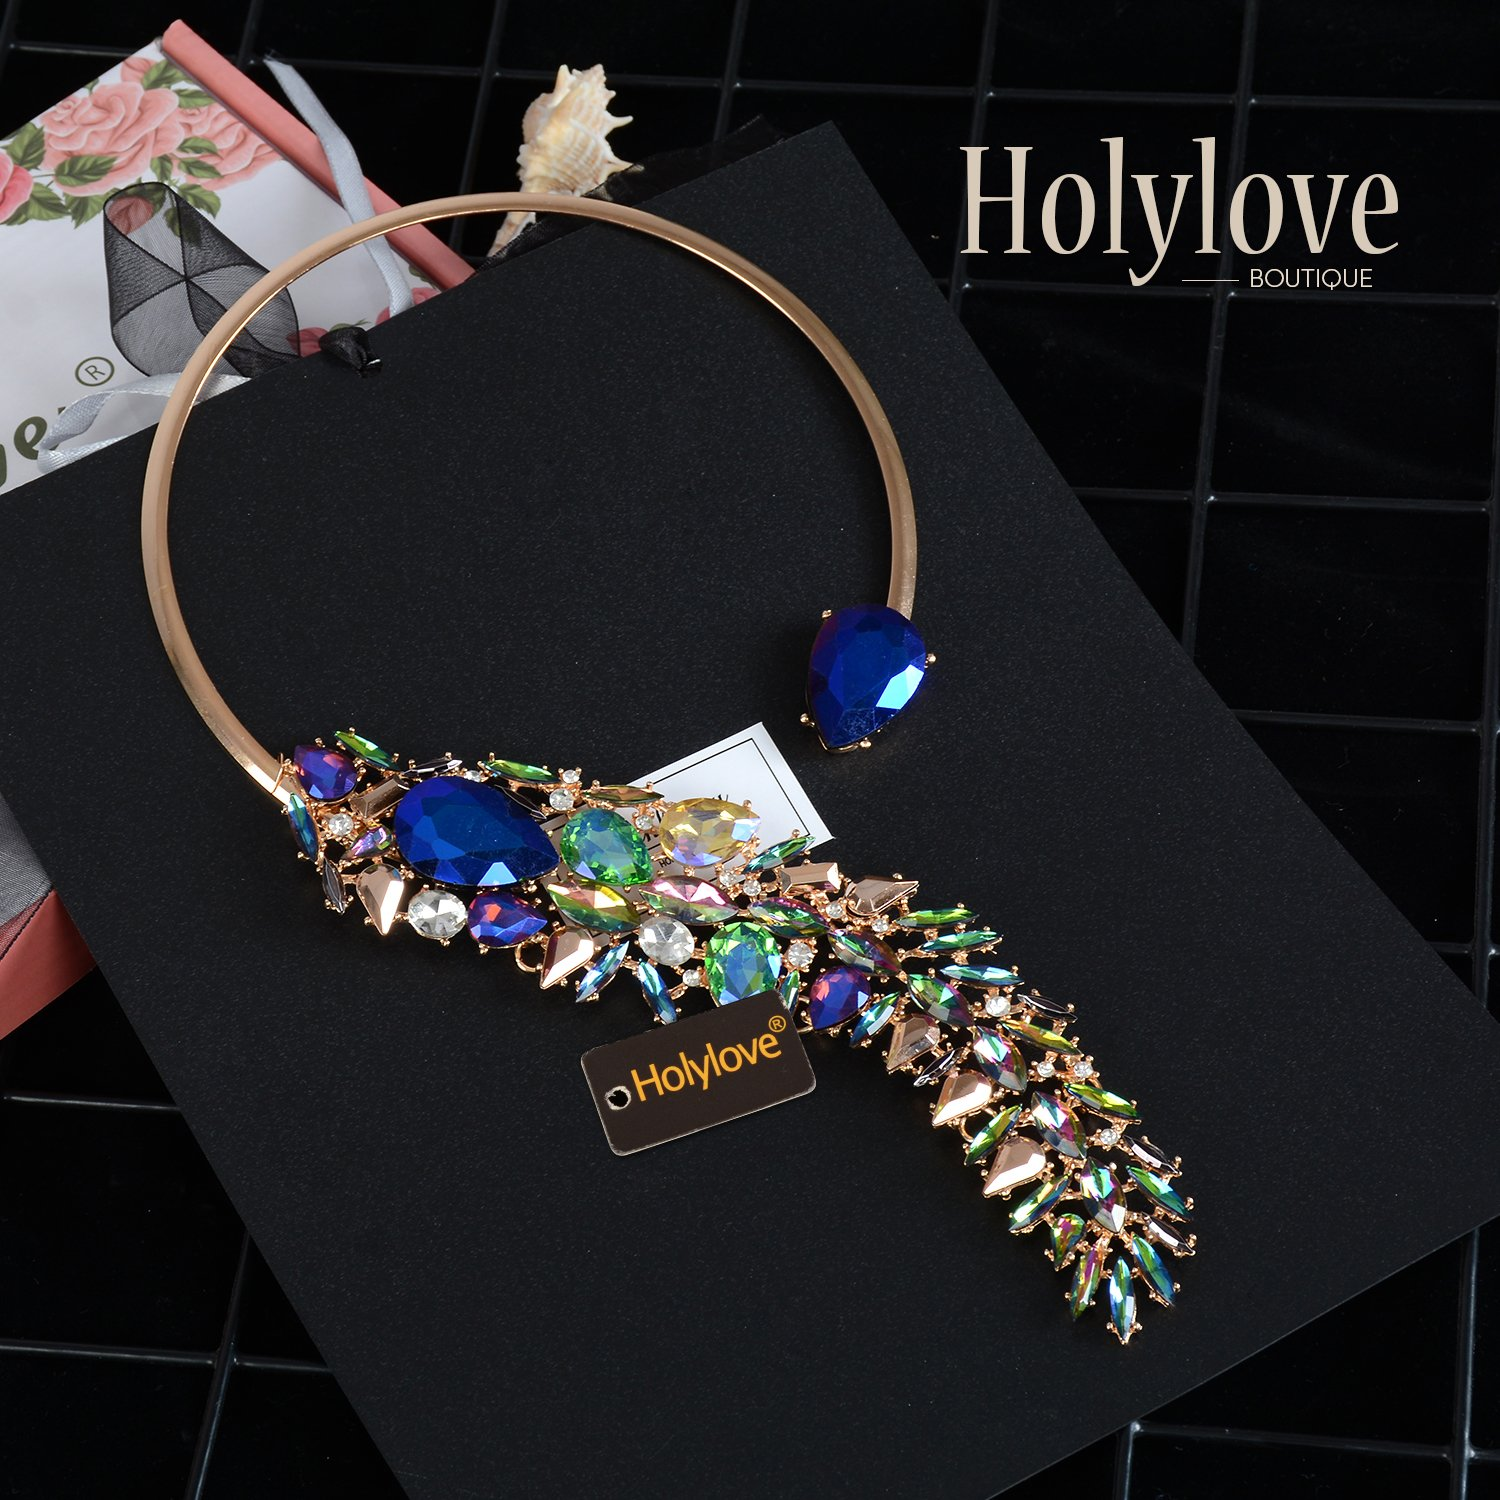 Holylove Women Costume Necklace Colorful, Statement Necklace for Women Novelty Fashion Jewelry 1 pc with Gift Box- HLN0008 Colorful by Holylove (Image #4)